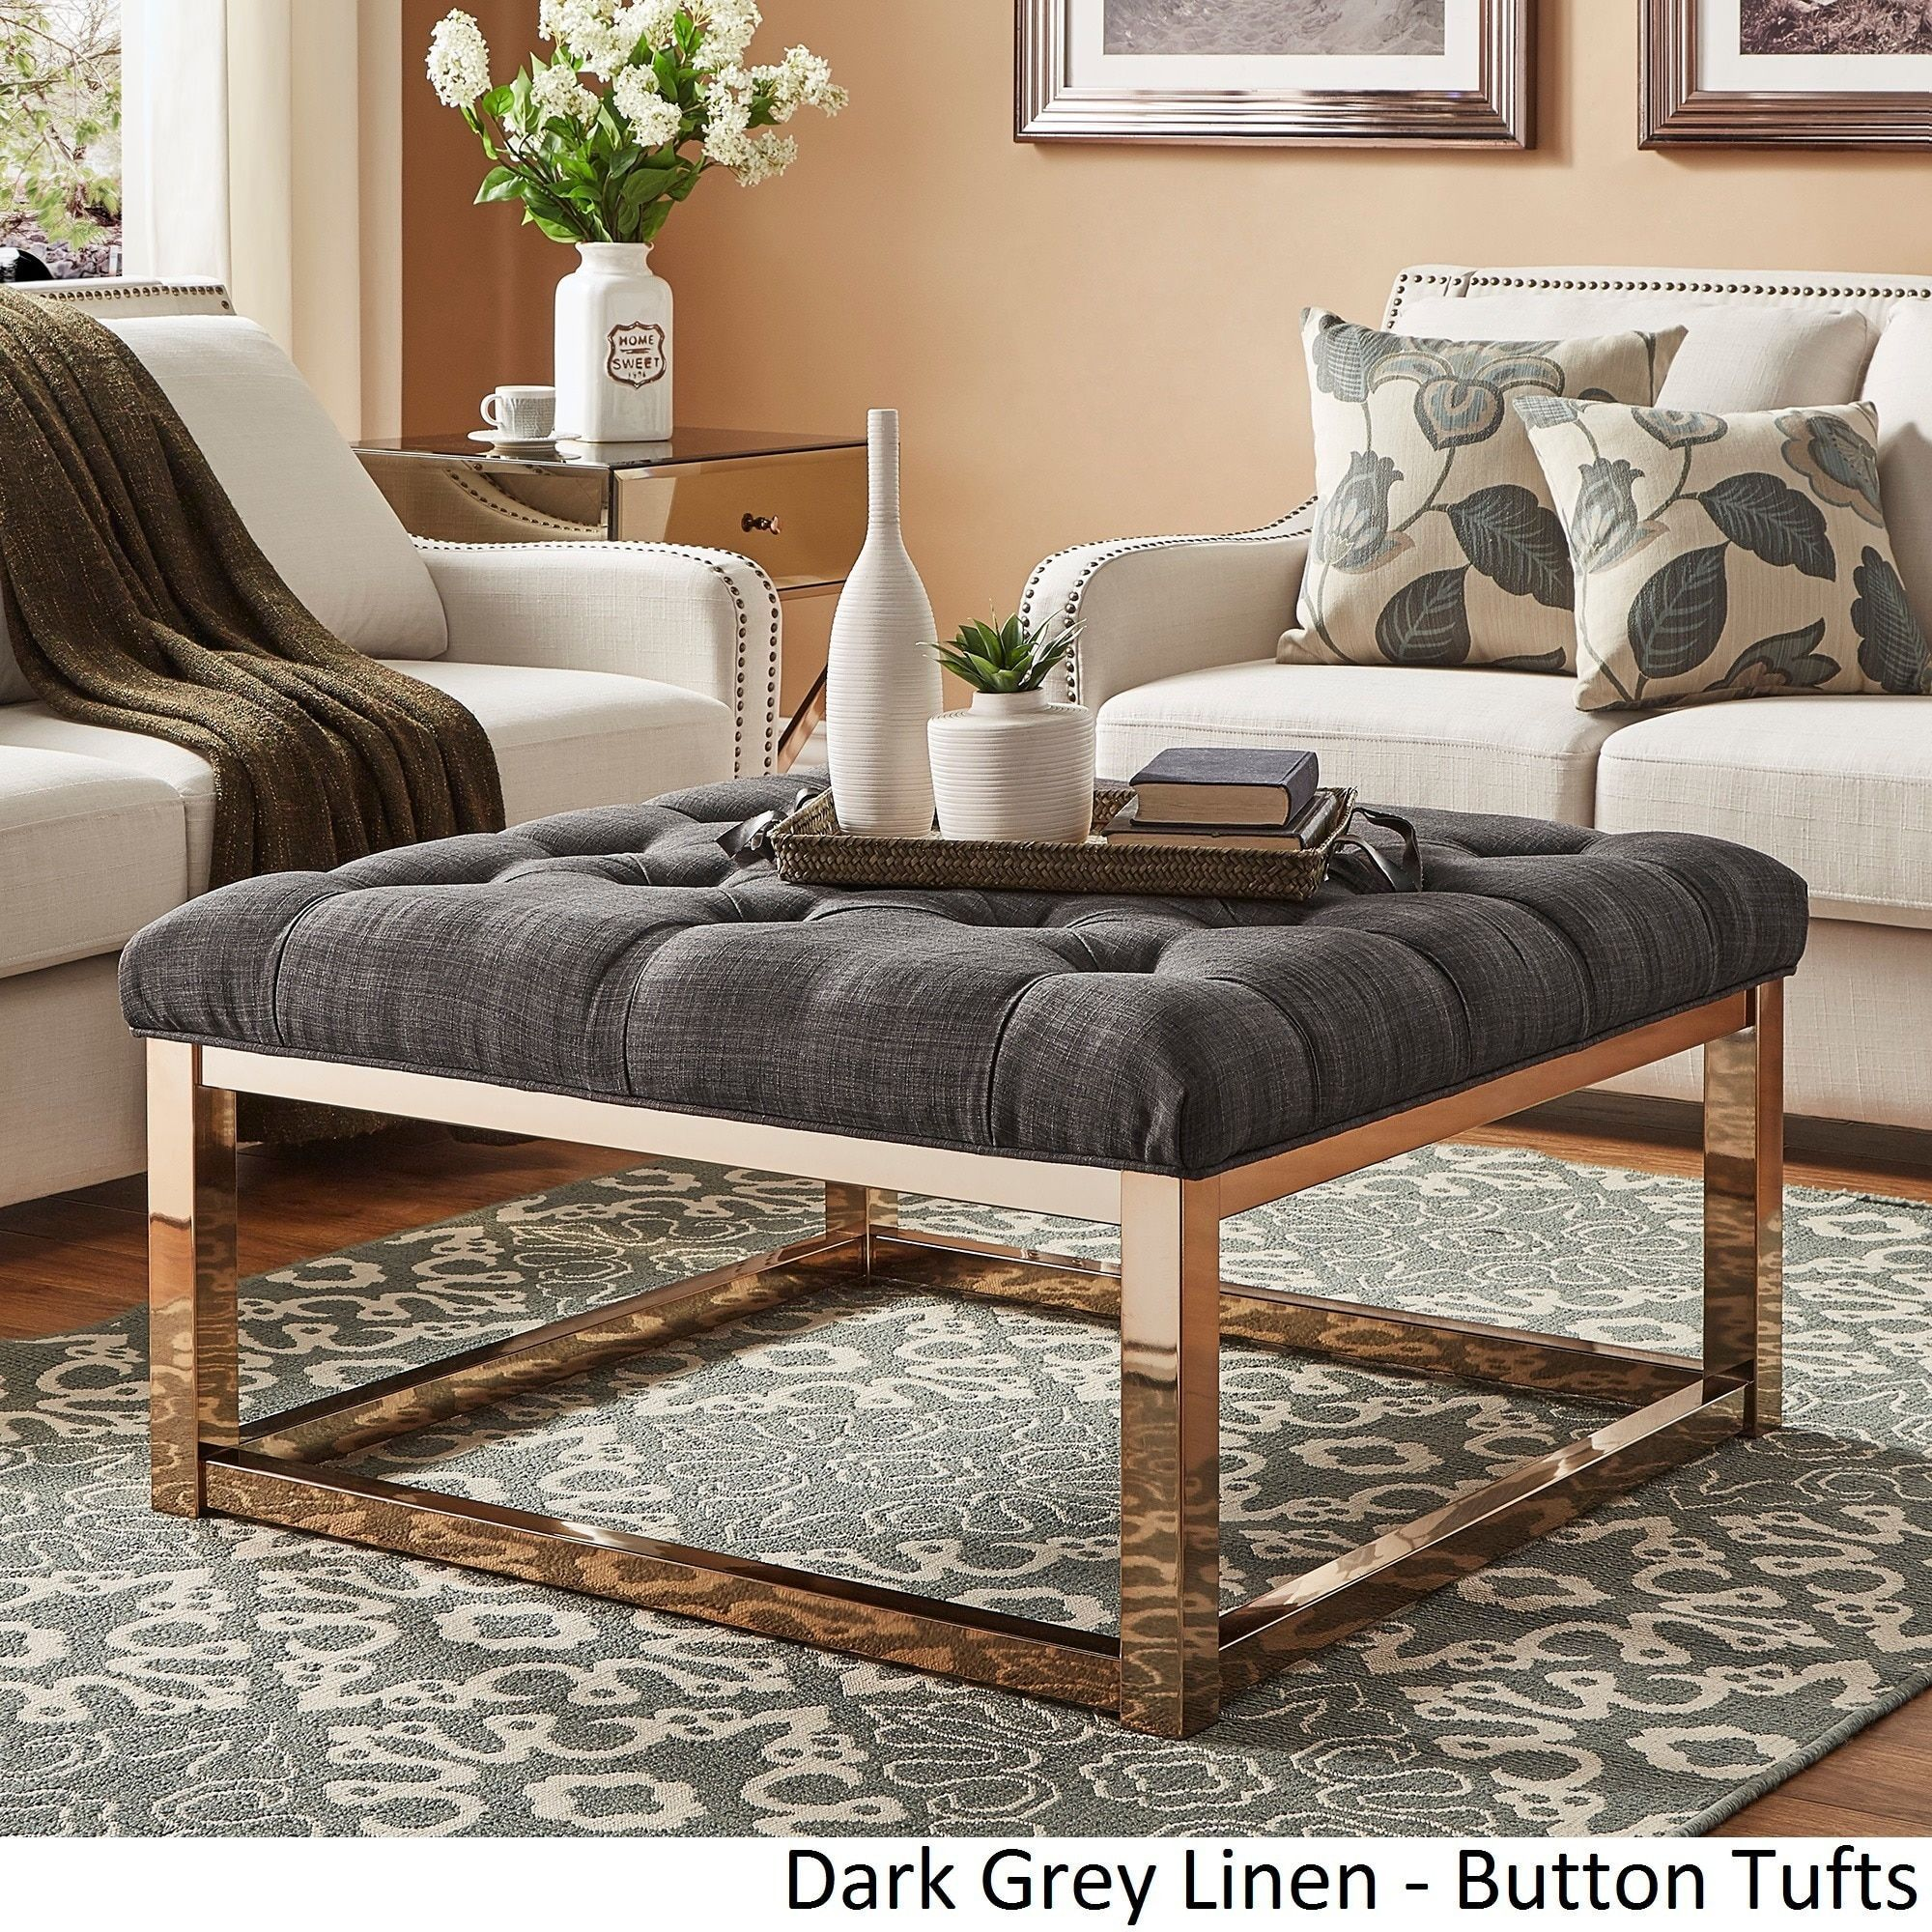 Solene Square Base Ottoman Coffee Table - Champagne Gold by Inspire ...